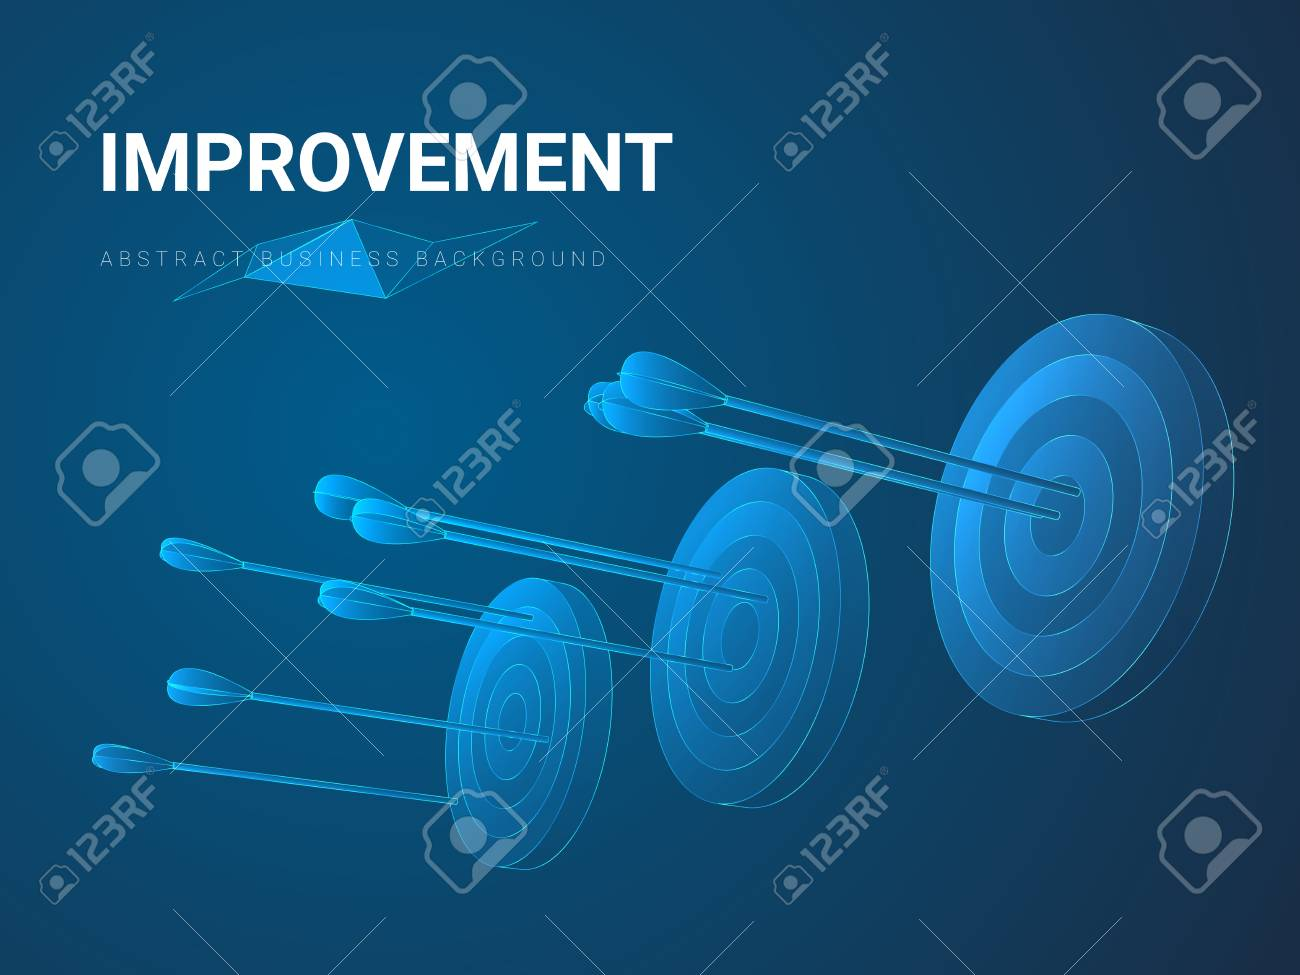 Abstract Modern Business Background Depicting Improvement In 1300x975